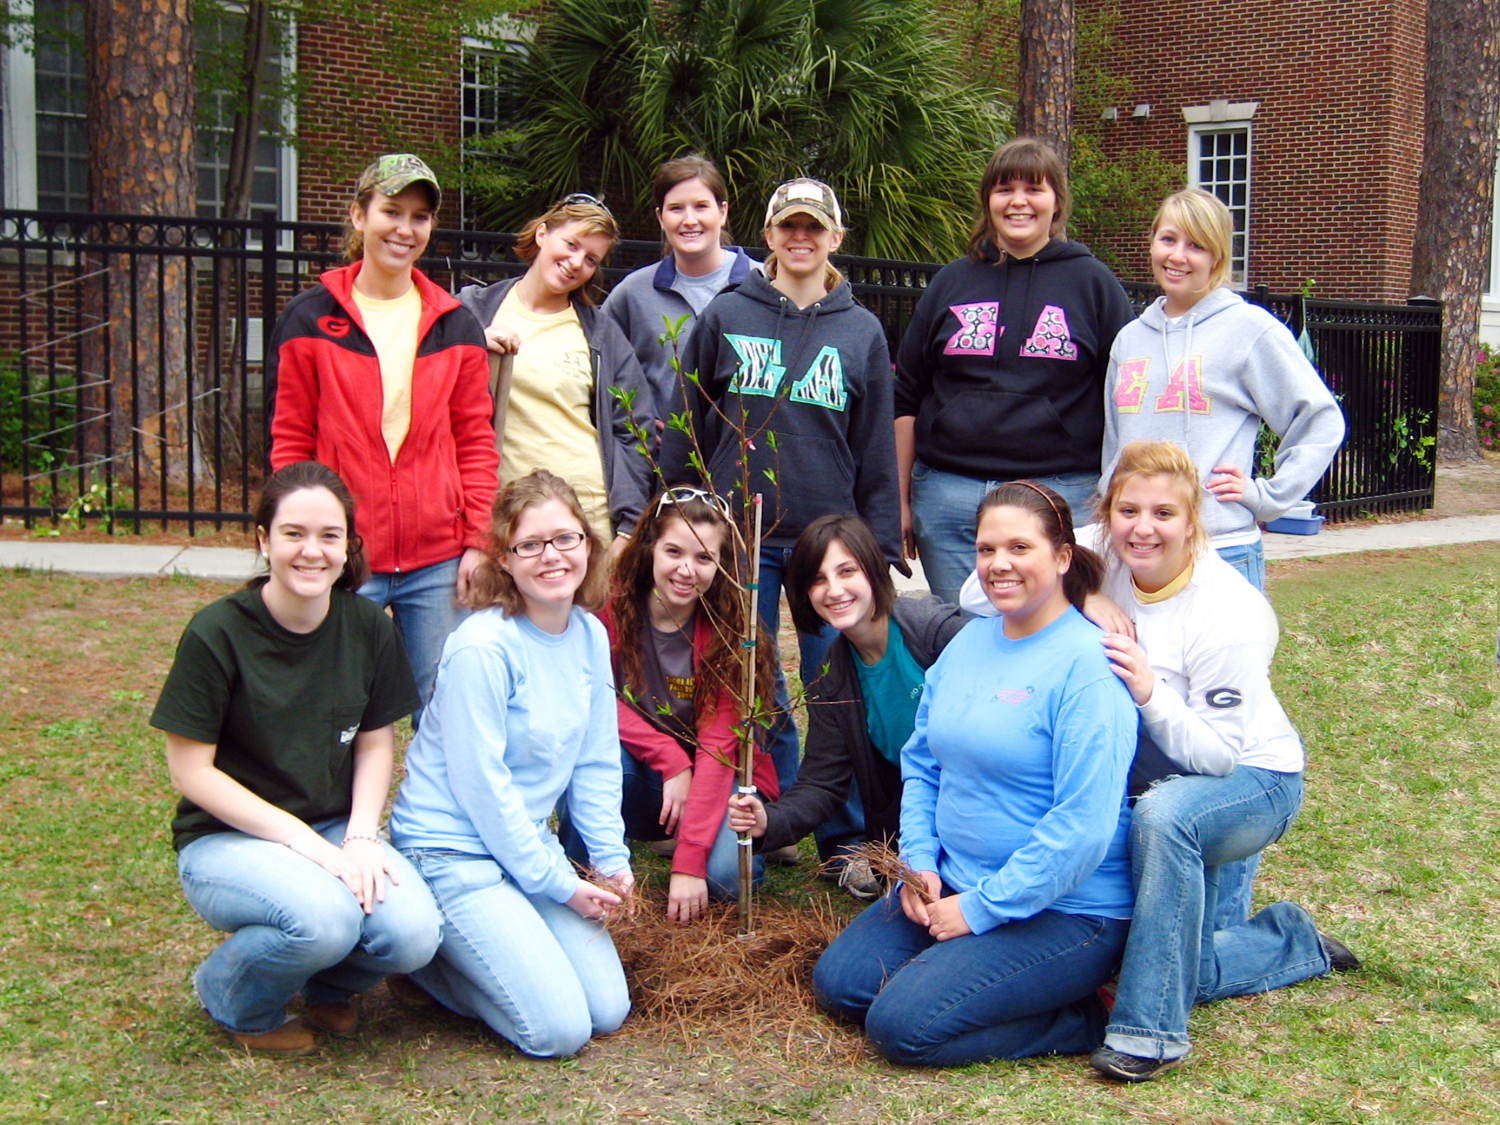 Members of professional agricultural sorority Sigma Alpha helped clear, plan and plant a garden at Charles Ellis Elementary School in Savannah, Ga., in March 2010.